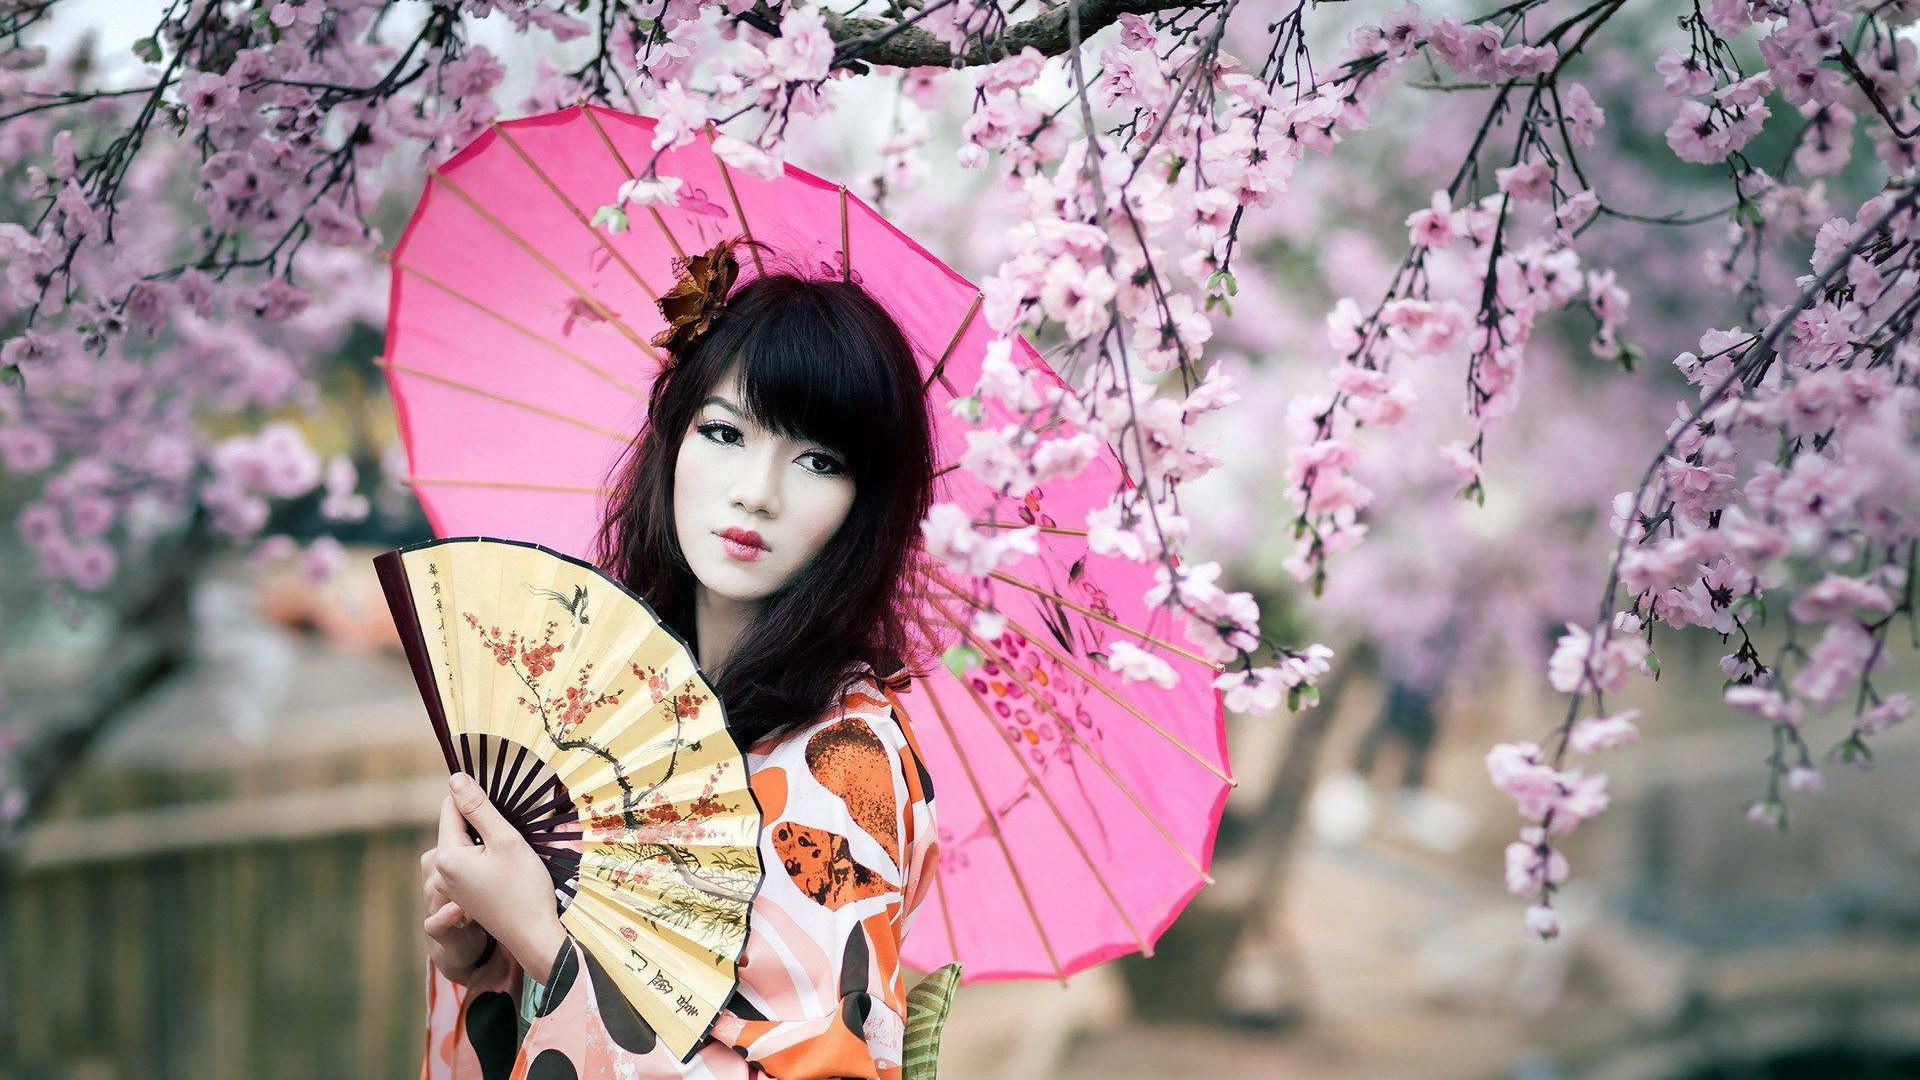 Beautiful Girl Wallpaper Hd 10 Splendid Geisha Hd Desktop Wallpaper Widescreen High